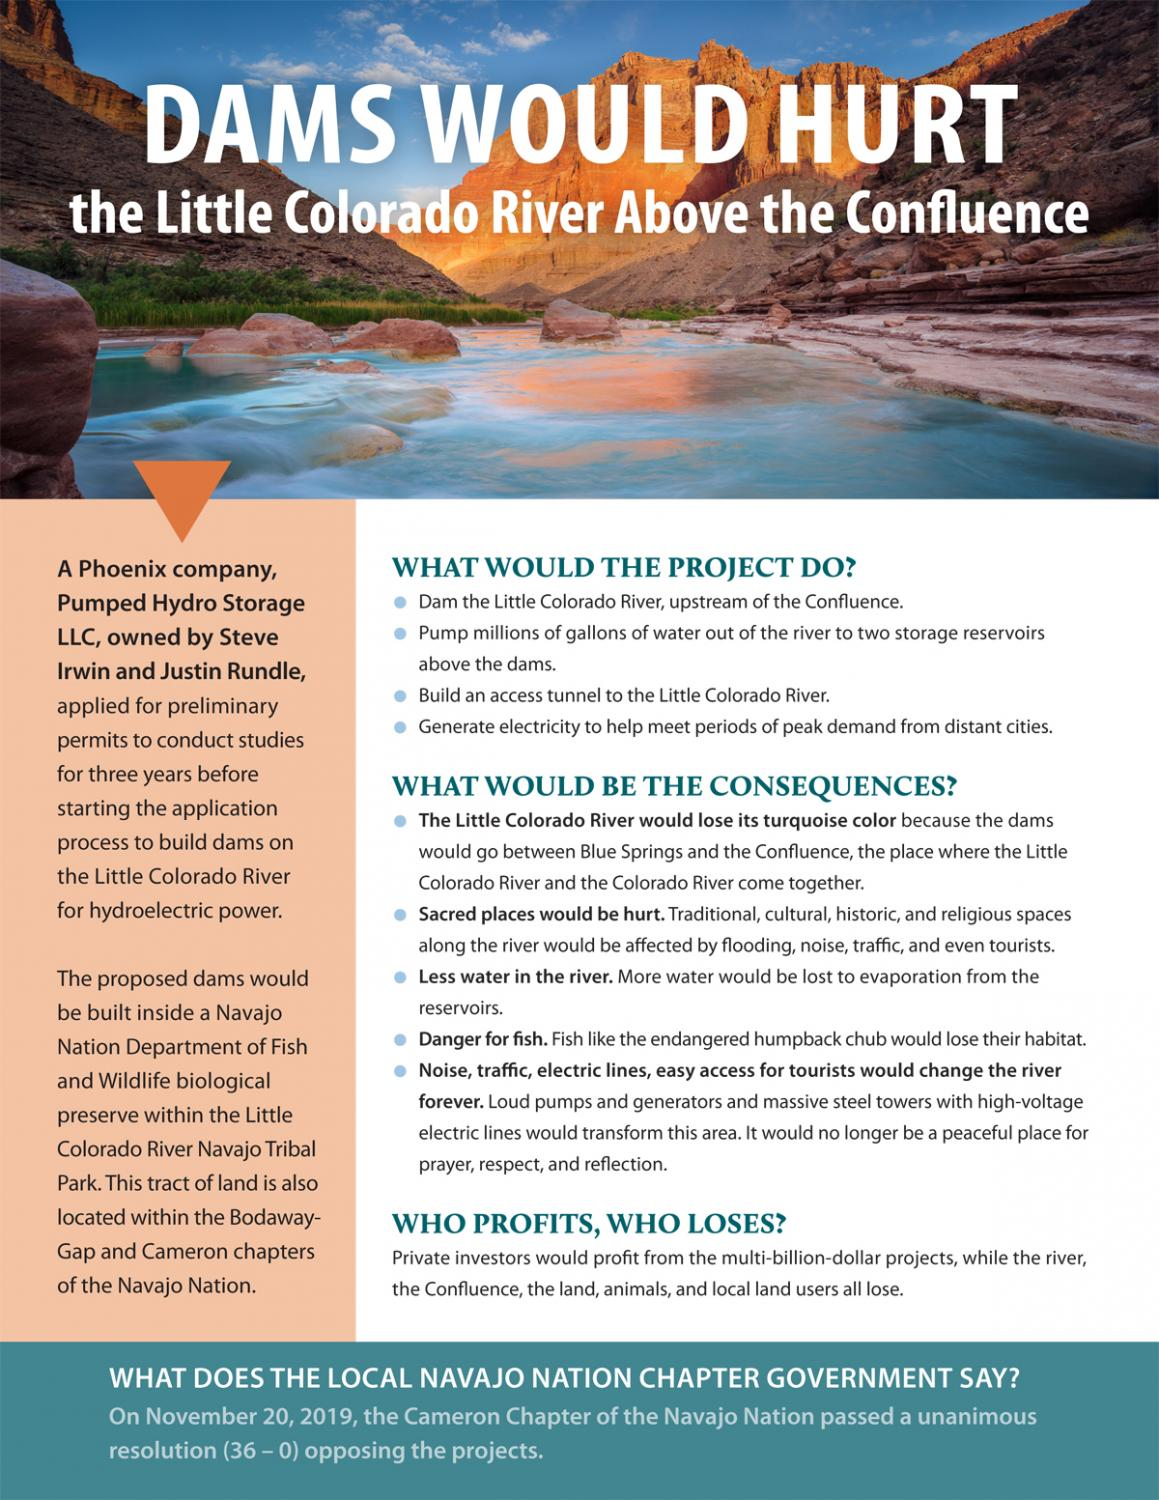 Dams would hurt the Little Colorado River Above the Confluence